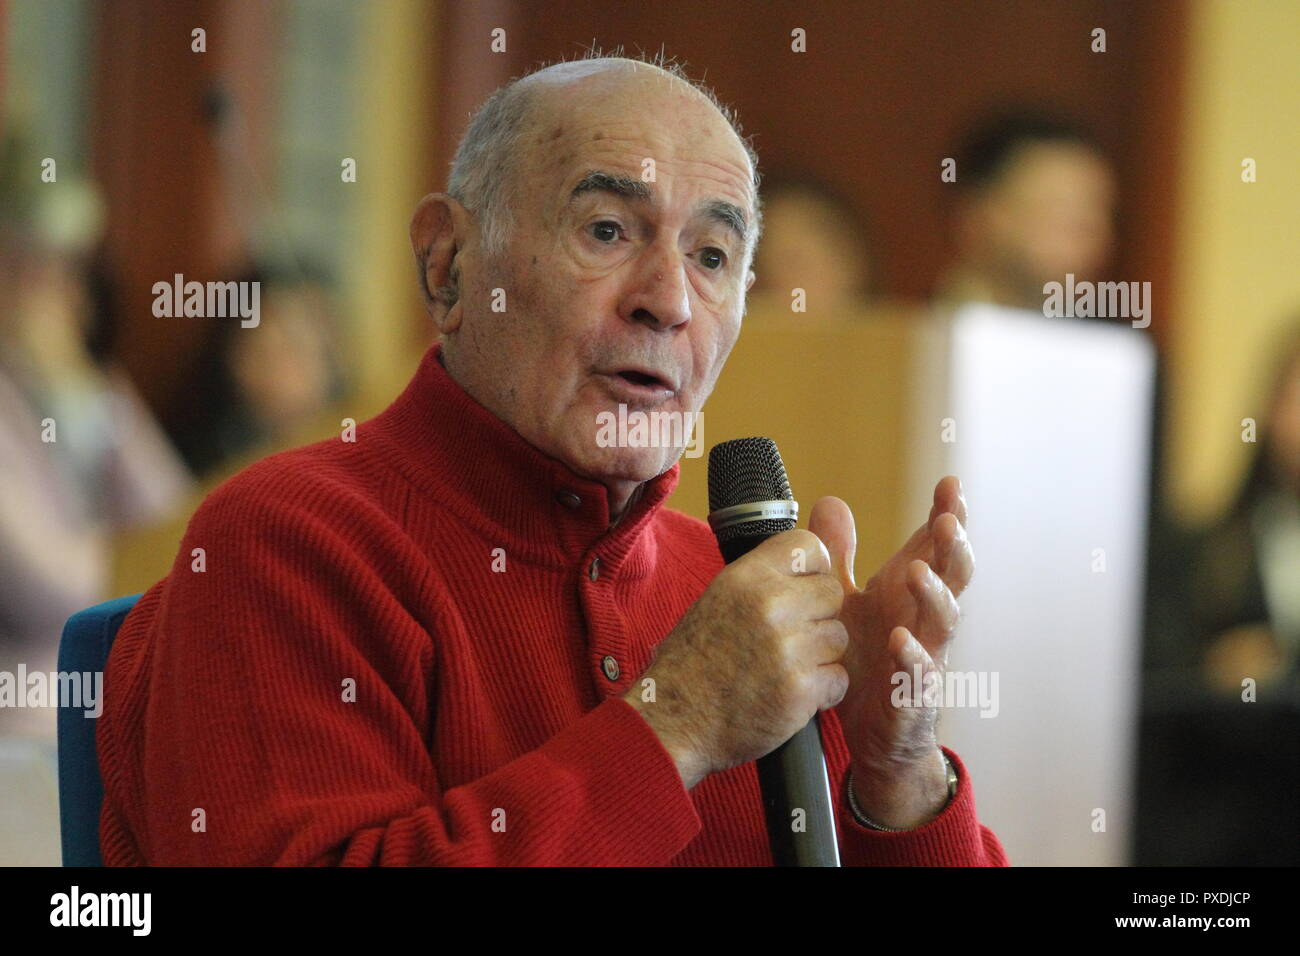 Cassino, Italy - 4 December 2017 - Sami Modiano, survivor of the Holocaust, tells the experience of the concentration camps of Auschwitz and Birkenau - Stock Image